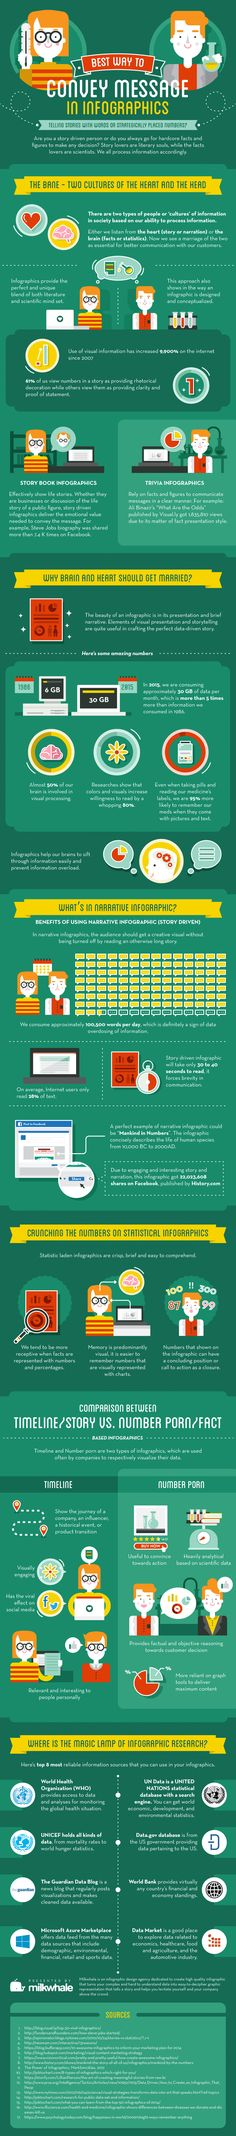 The Best Way to Convey Messages in Infographic